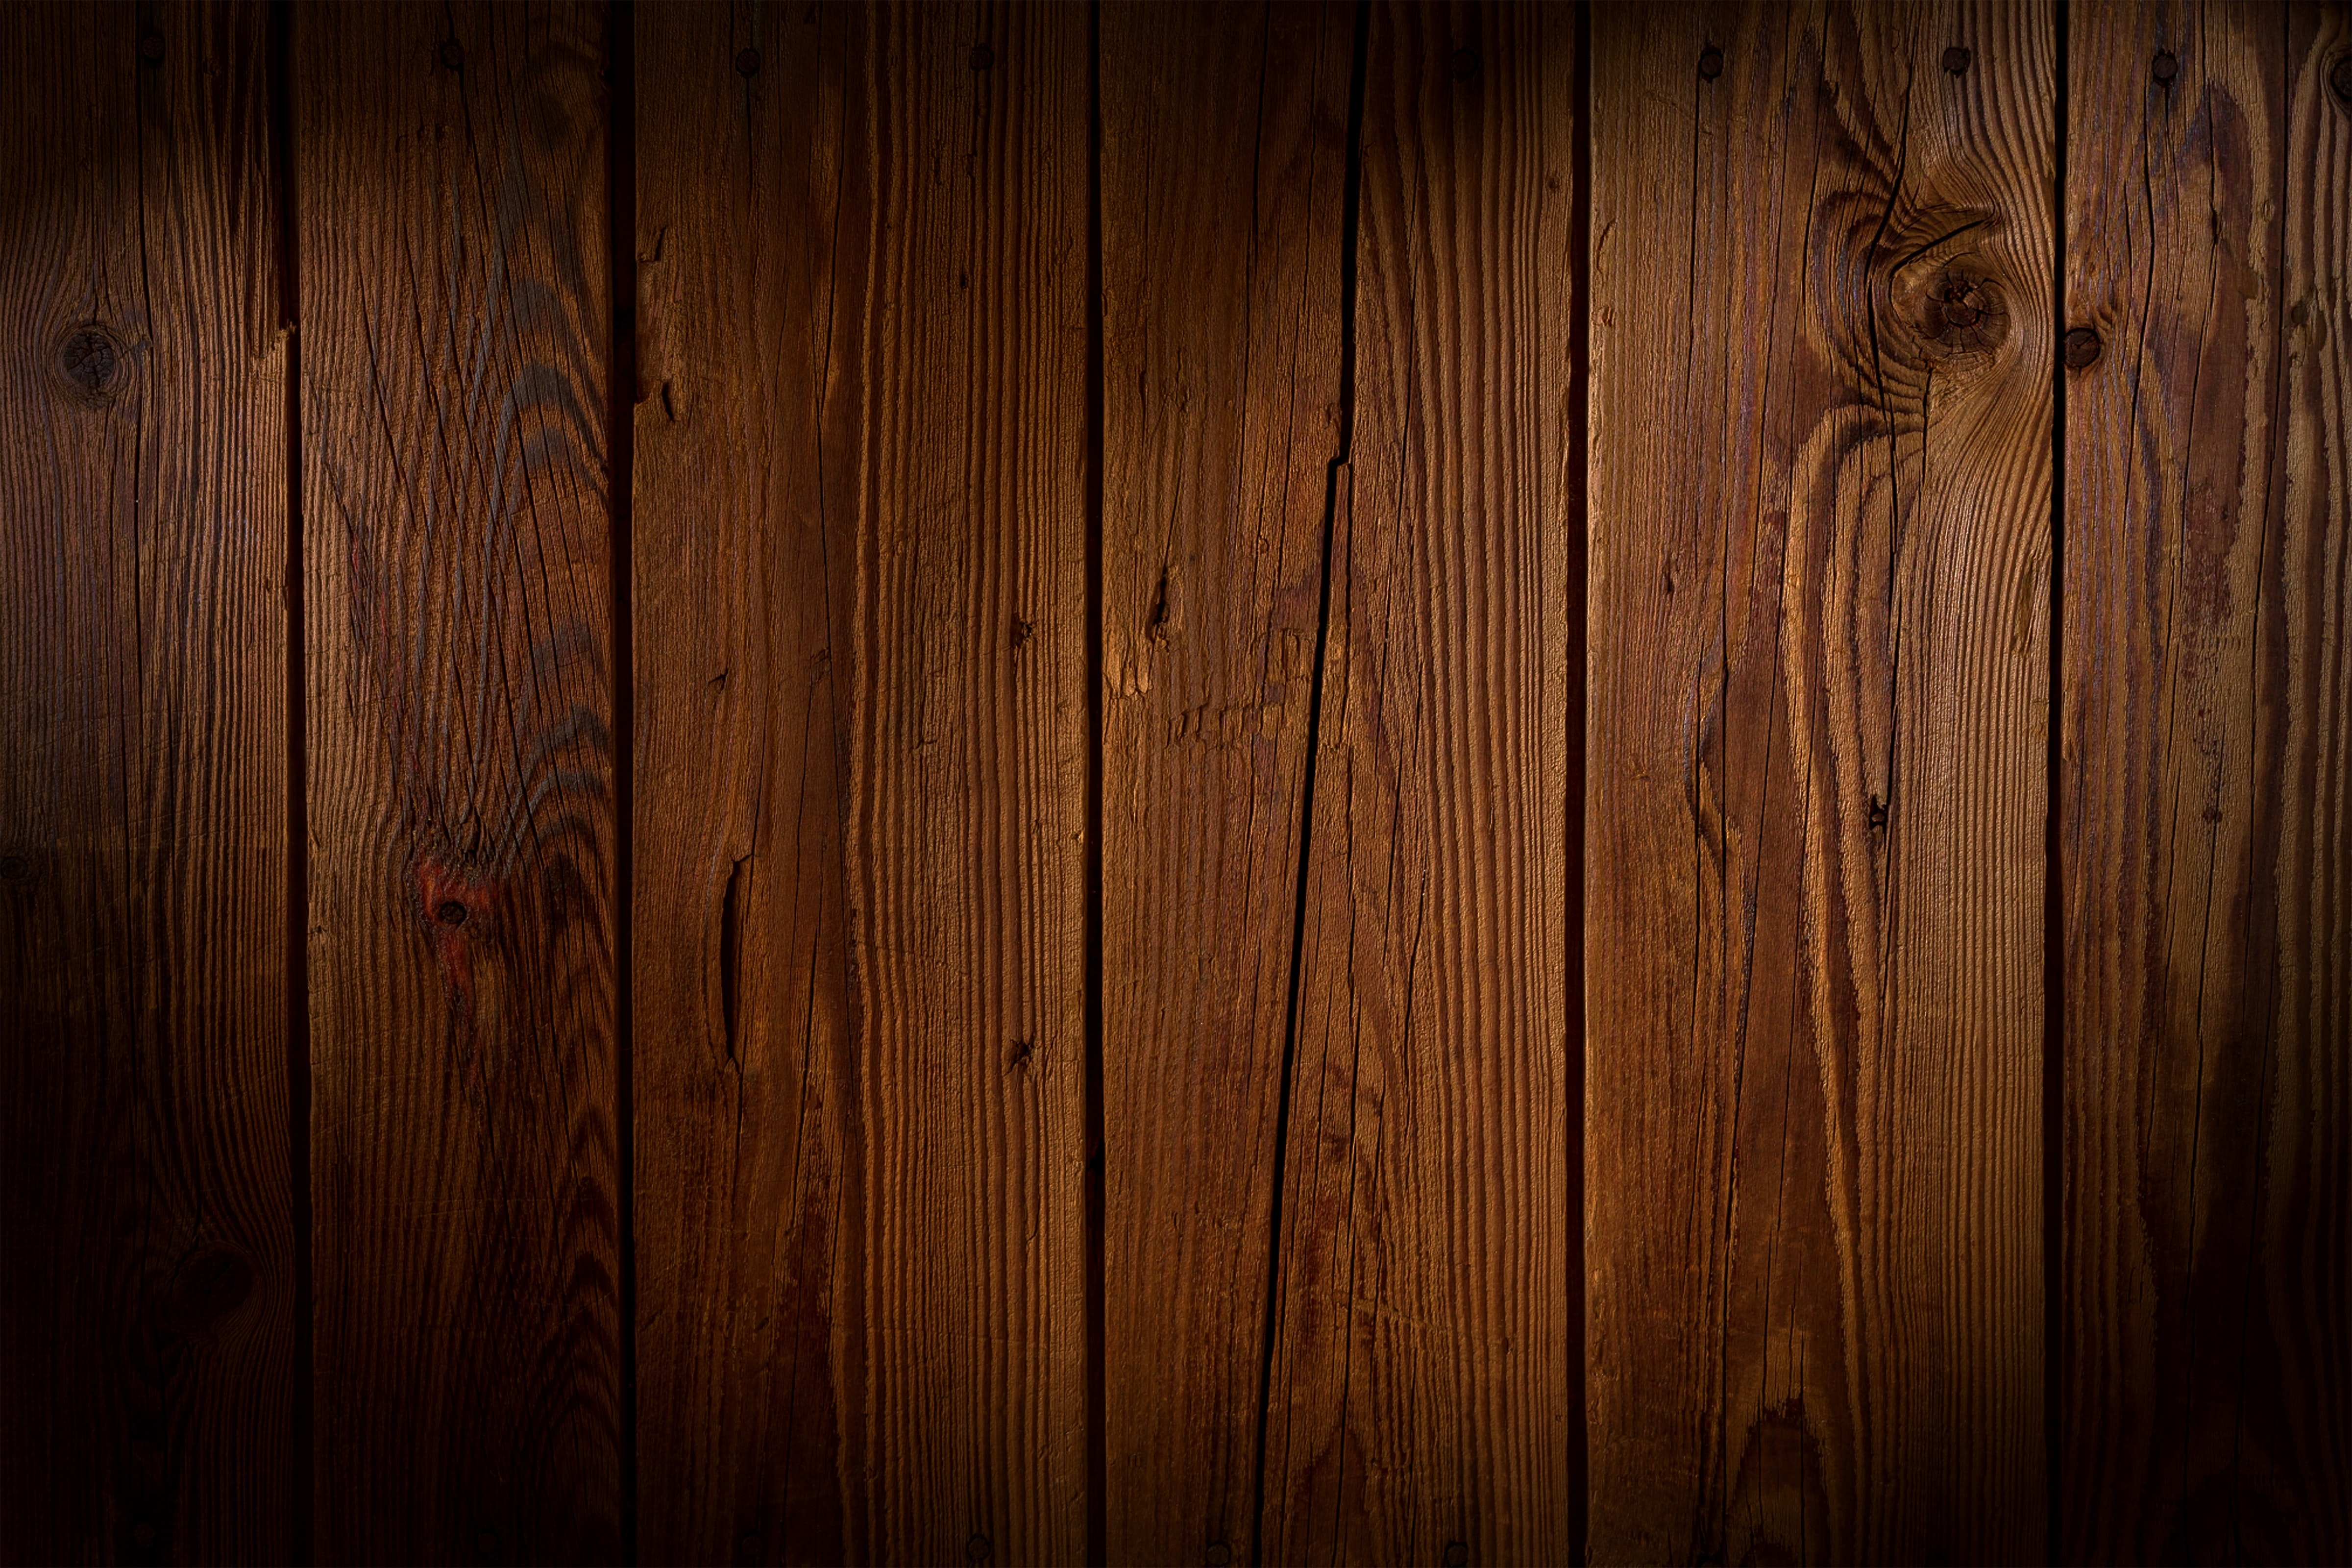 Macro Shot of Wooden Planks, Background, Rough, Wooden, Wood planks, HQ Photo